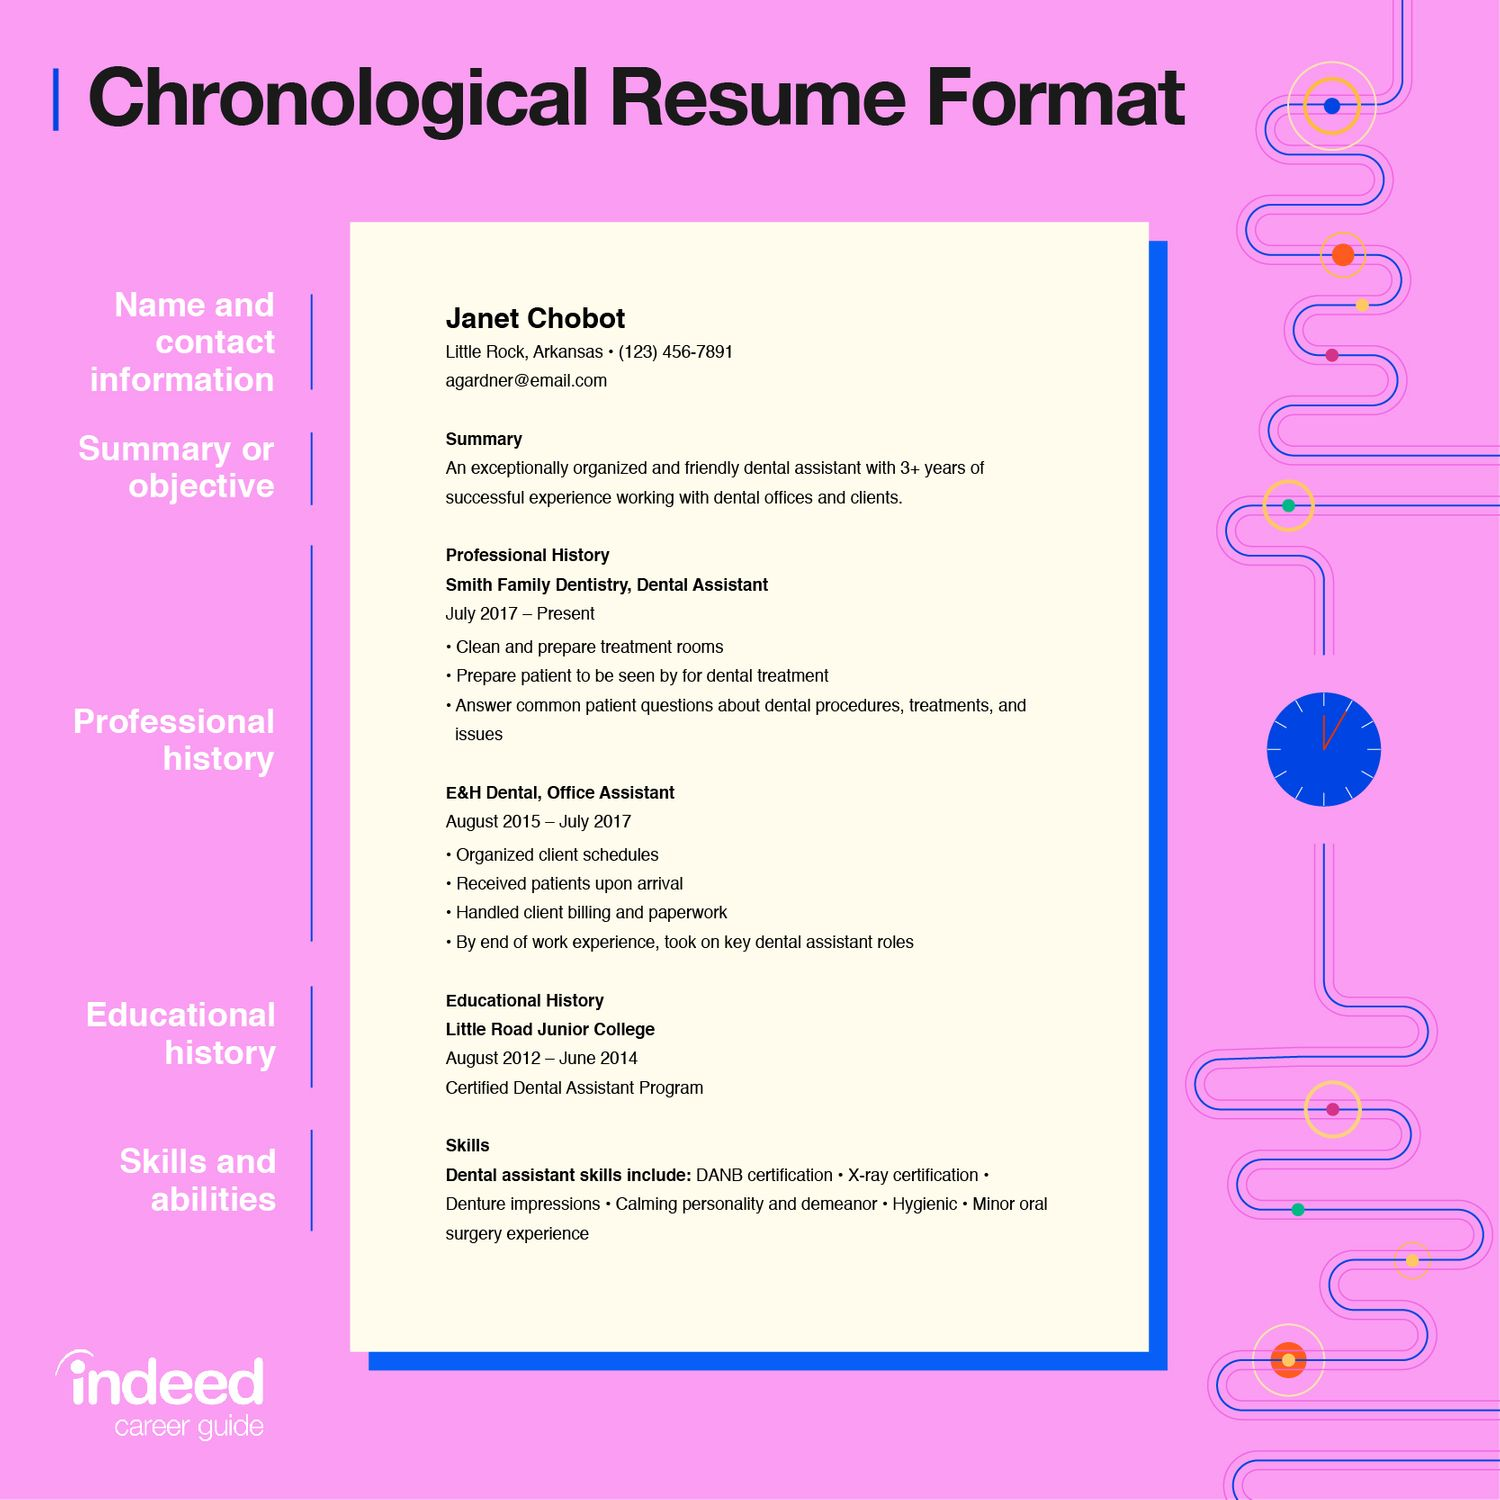 Resume Format Guide With Tips And Examples Indeed Com